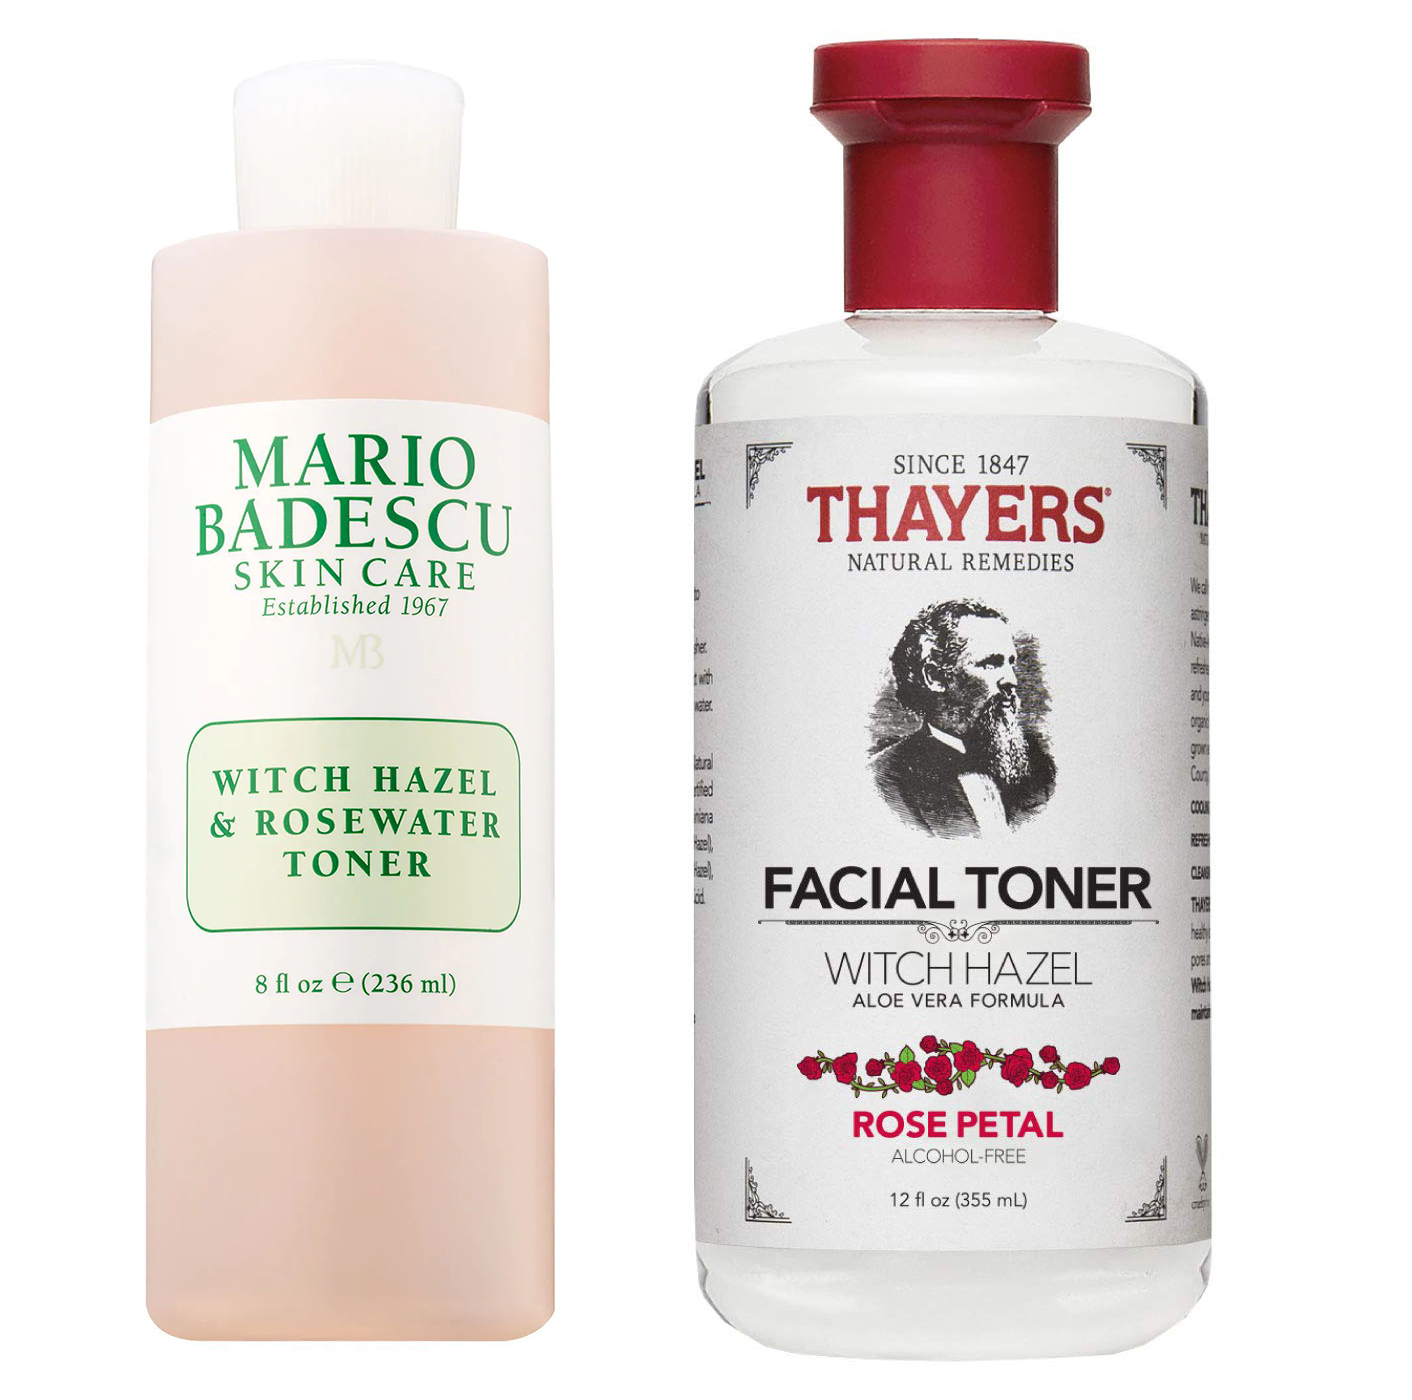 Mario Badescu Witch Hazel & Rosewater Toner vs. Thayers Alcohol-Free Rose Petal Witch Hazel Toner with Aloe Vera